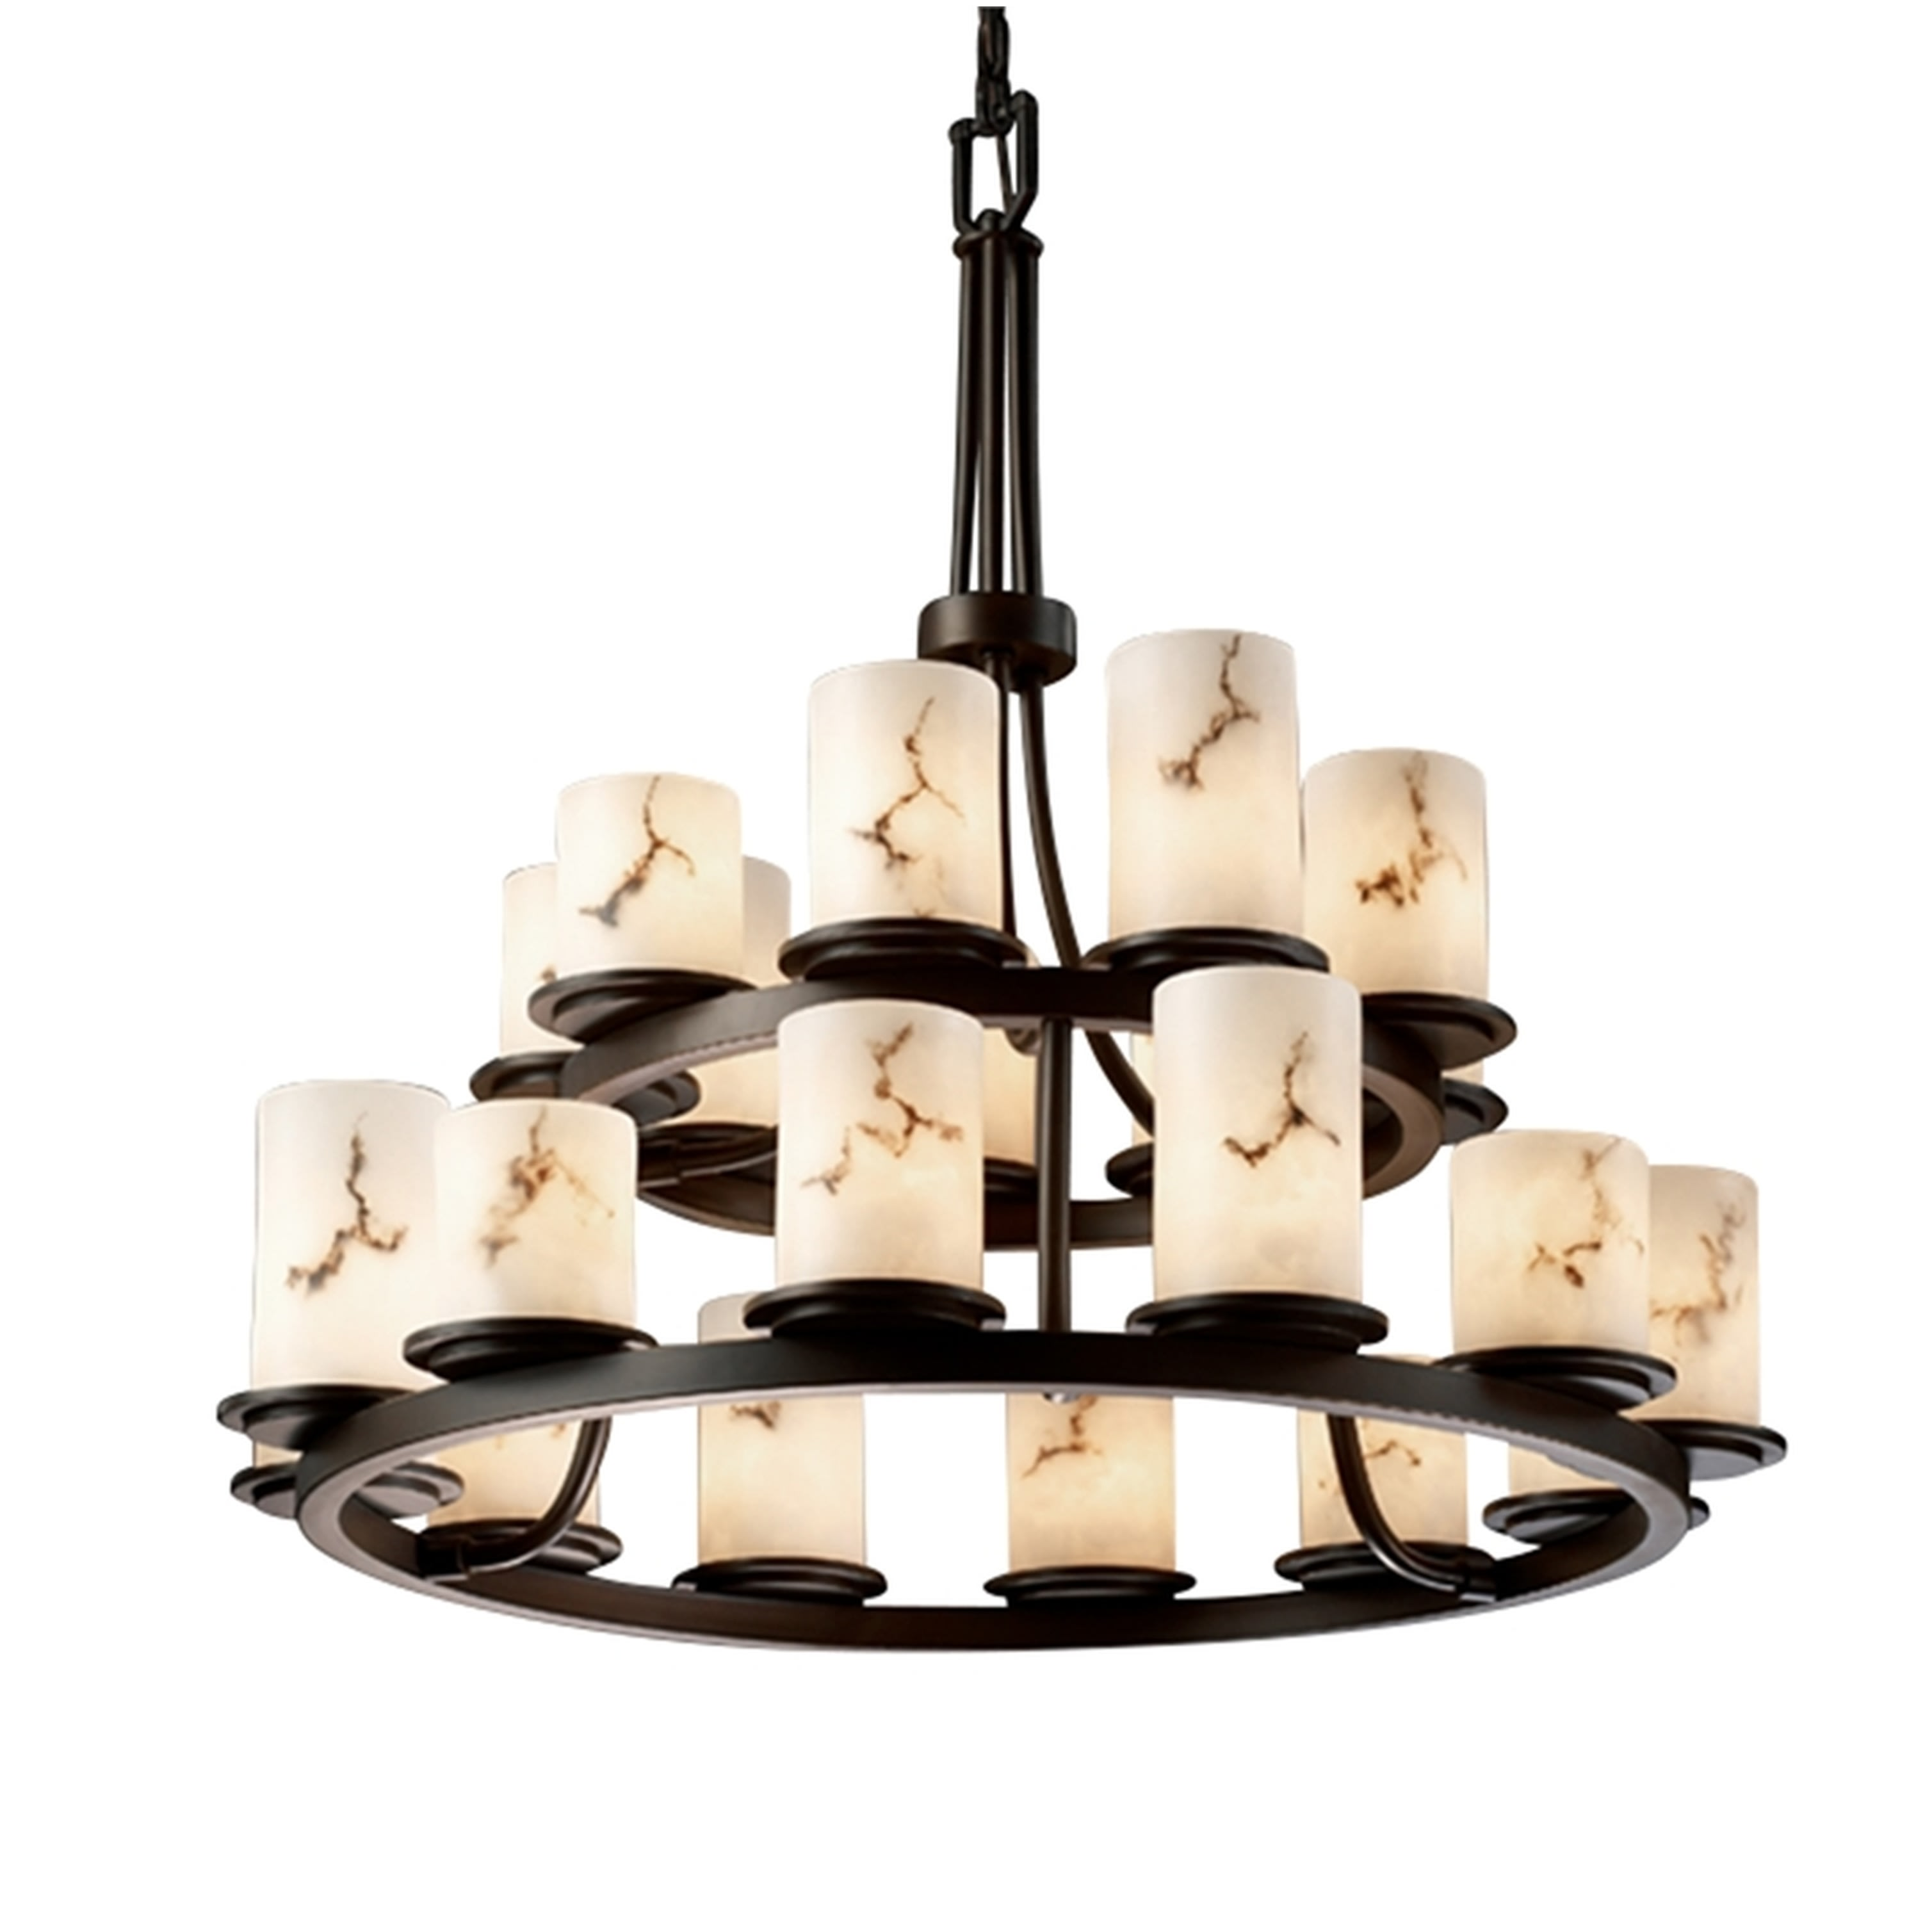 Picture of: Justice Design Group Fal 8767 10 Dbrz Dark Bronze Lumenaria 21 Light 33 Wide Pillar Candle Chandelier With Faux Alabaster Resin Shades Lightingdirect Com